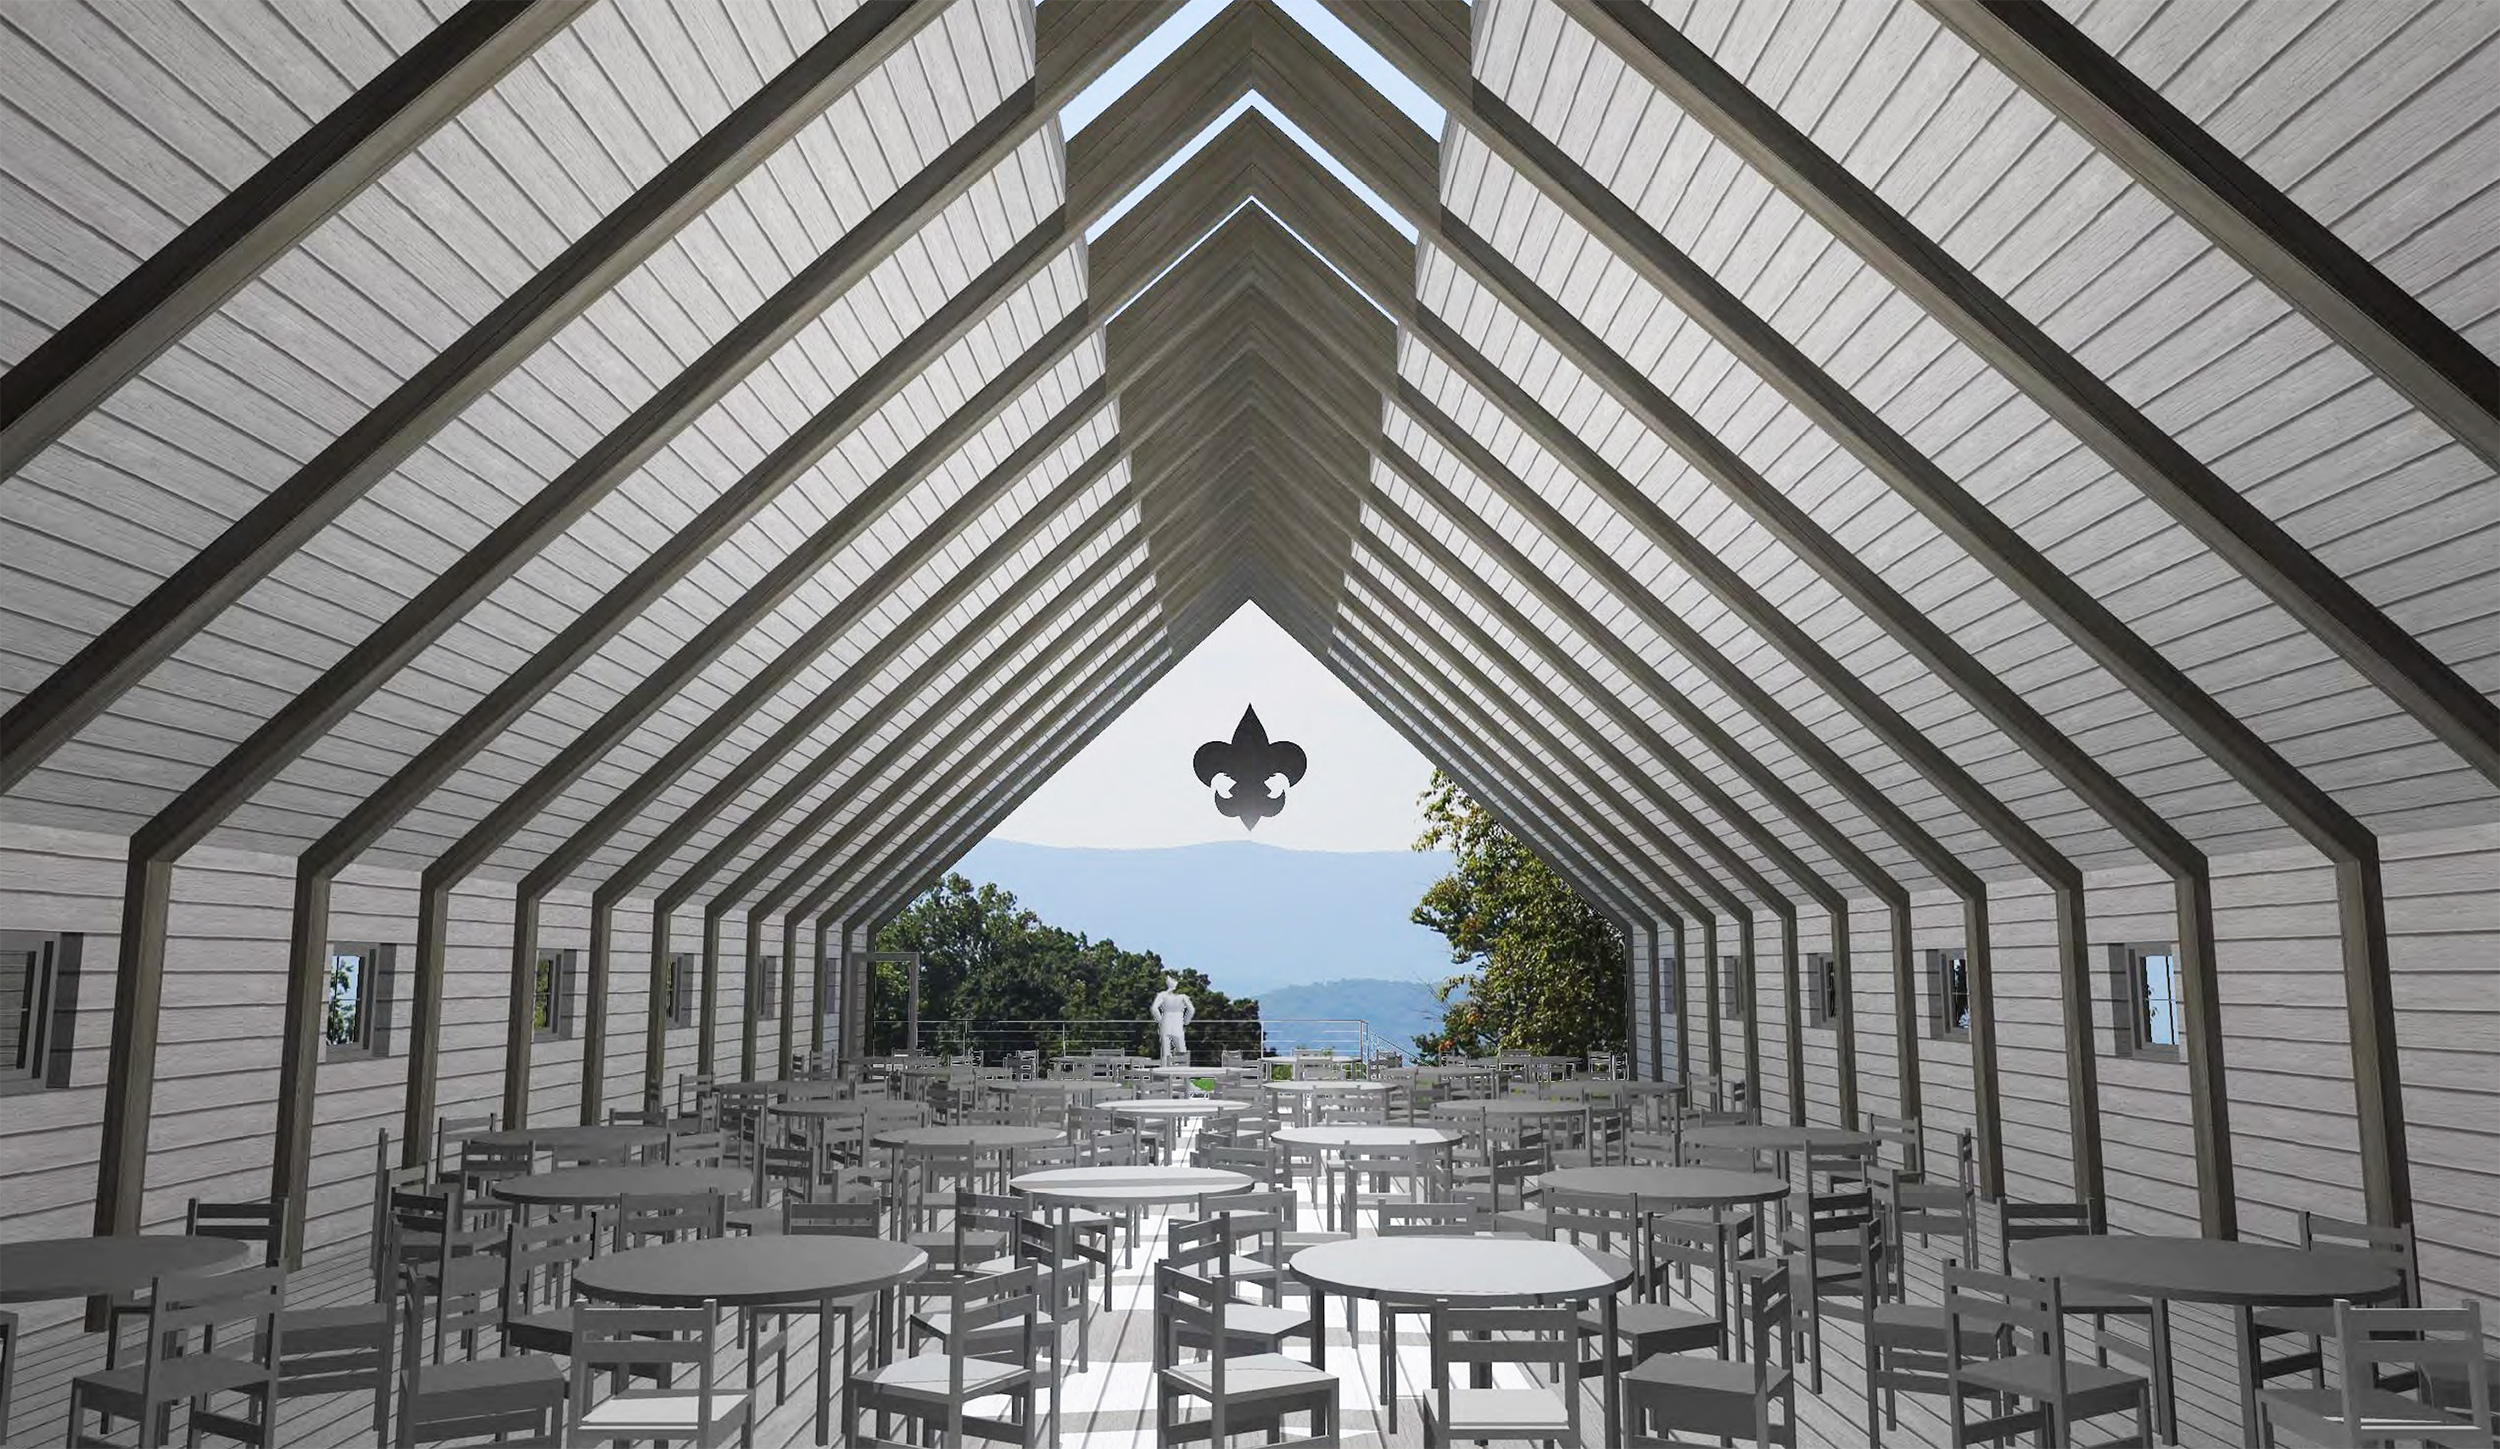 CONFERENCE INTERIOR WITH VAULTED CEILING, RIDGE SKYLIGHT & AN OPPORTUNITY TO CALIBRATE A VIEW.